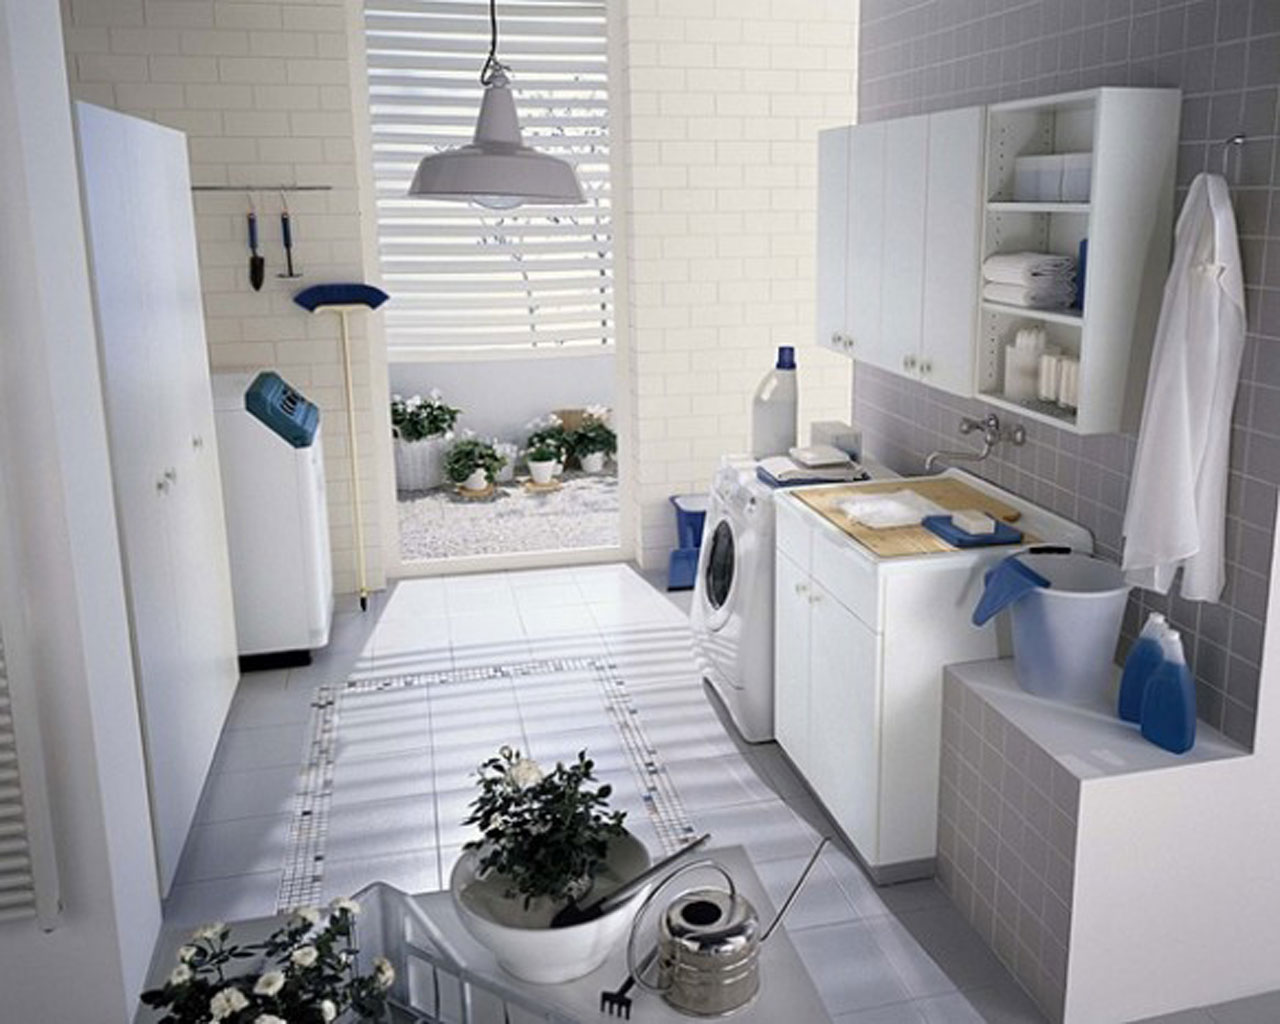 Small bathroom designs 2013 bathroom designs ideas Laundry room blueprints